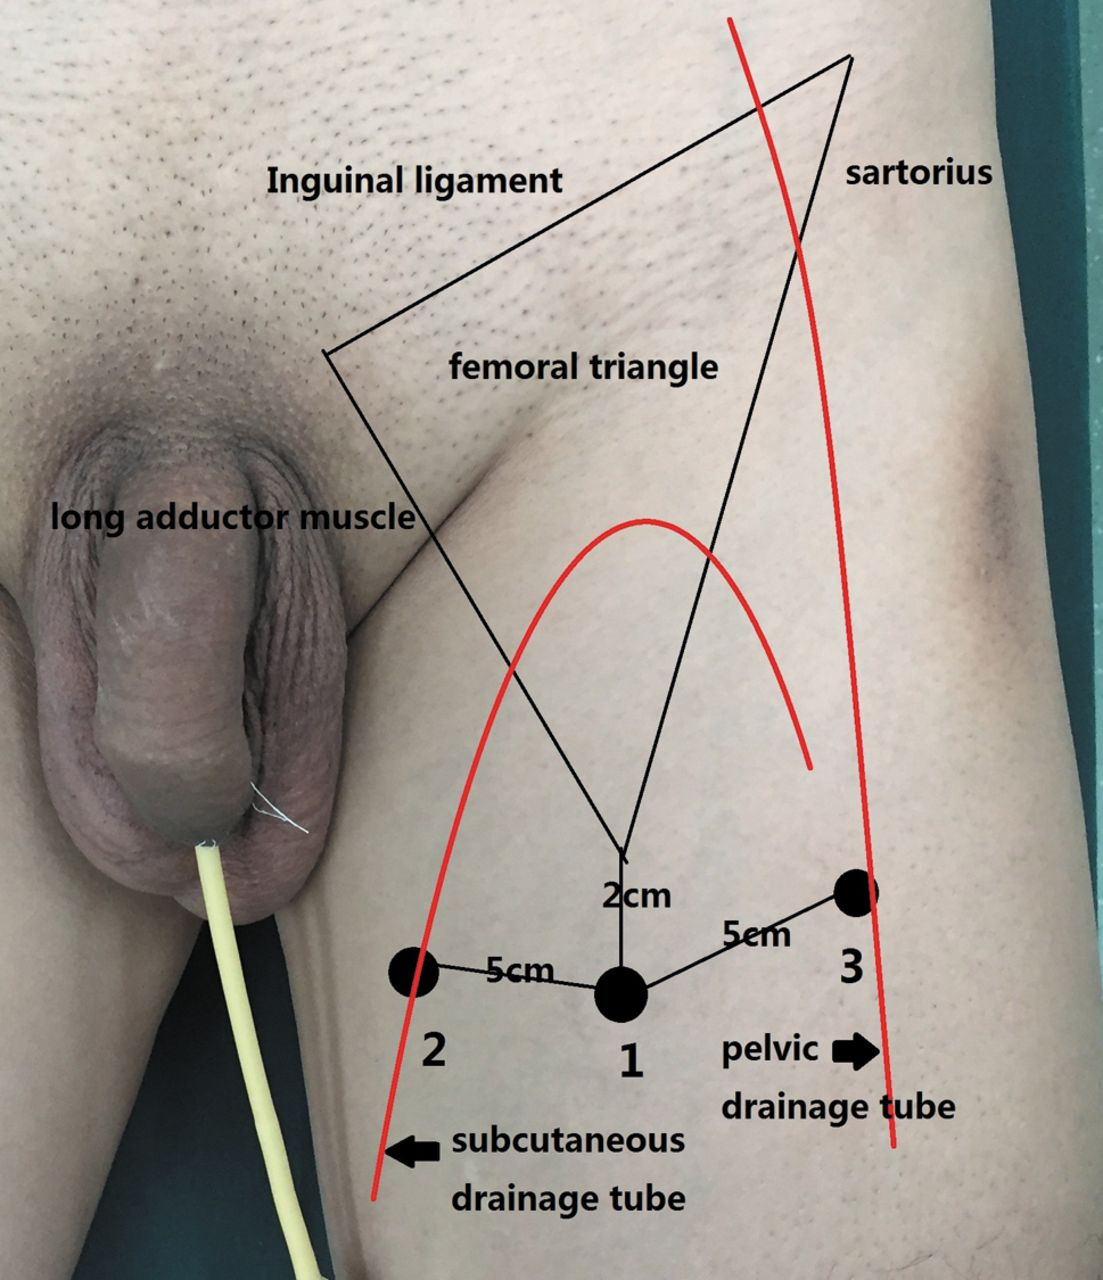 Comparison Of Efficiency Of Video Endoscopy And Open Inguinal Lymph